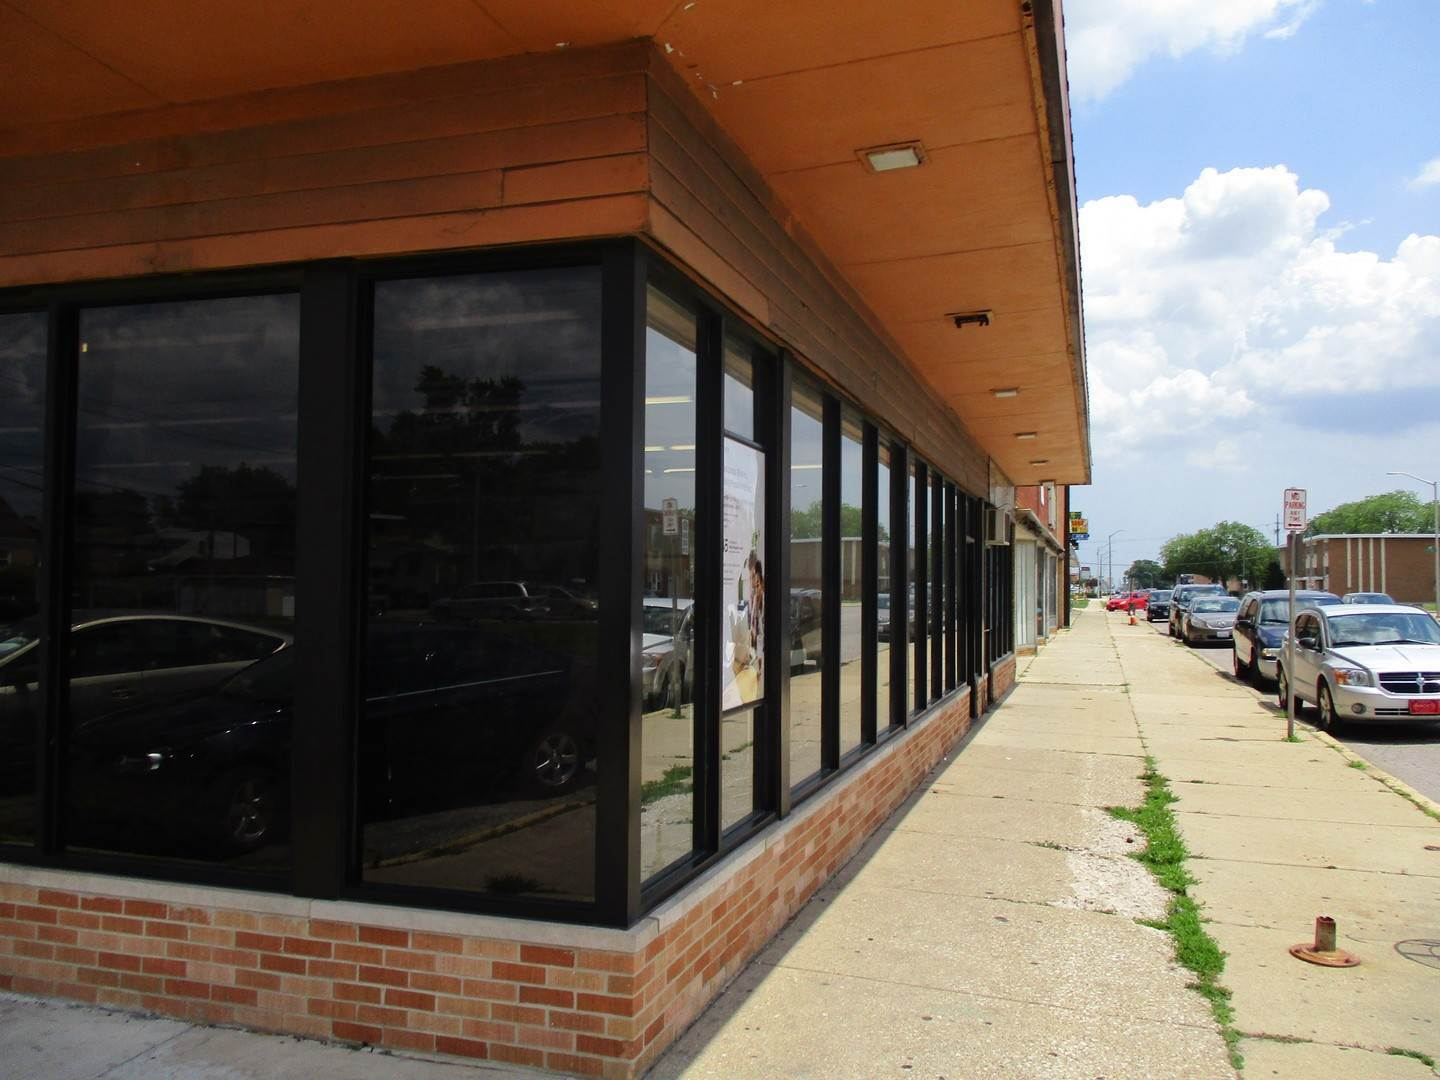 Comercial en 2139 S 18th Avenue Broadview, Illinois 60155 Estados Unidos